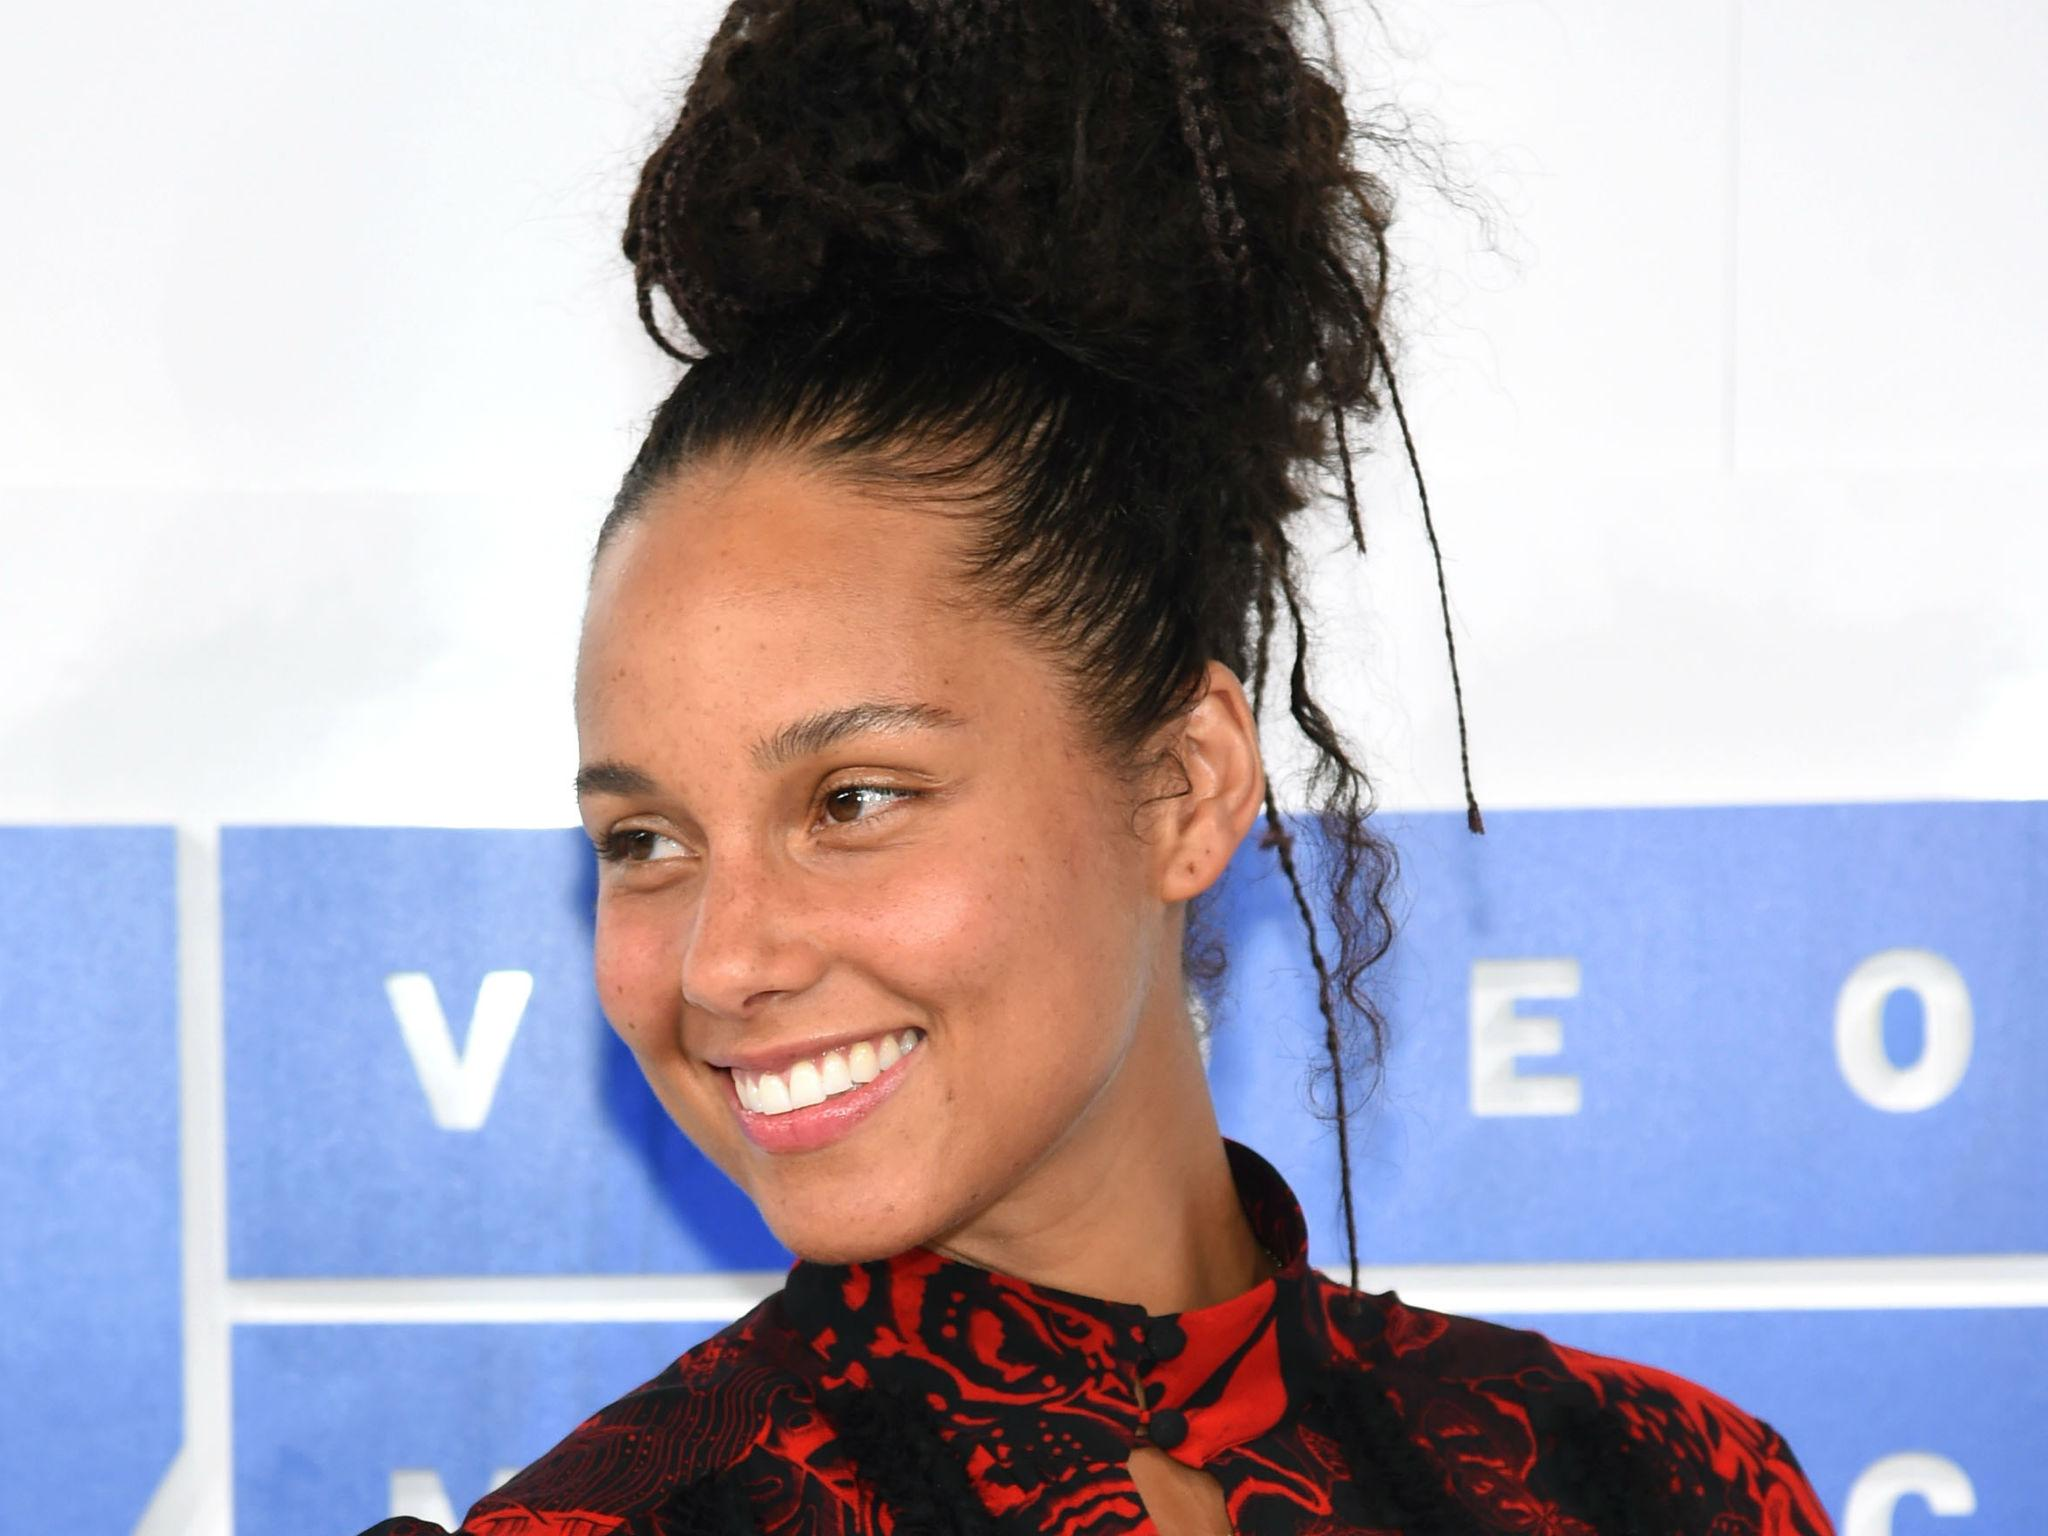 Response to a twitter troll who shamed her for not wearing makeup - Alicia Keys Responds To Criticism After Attending Mtv Vmas With No Make Up The Independent